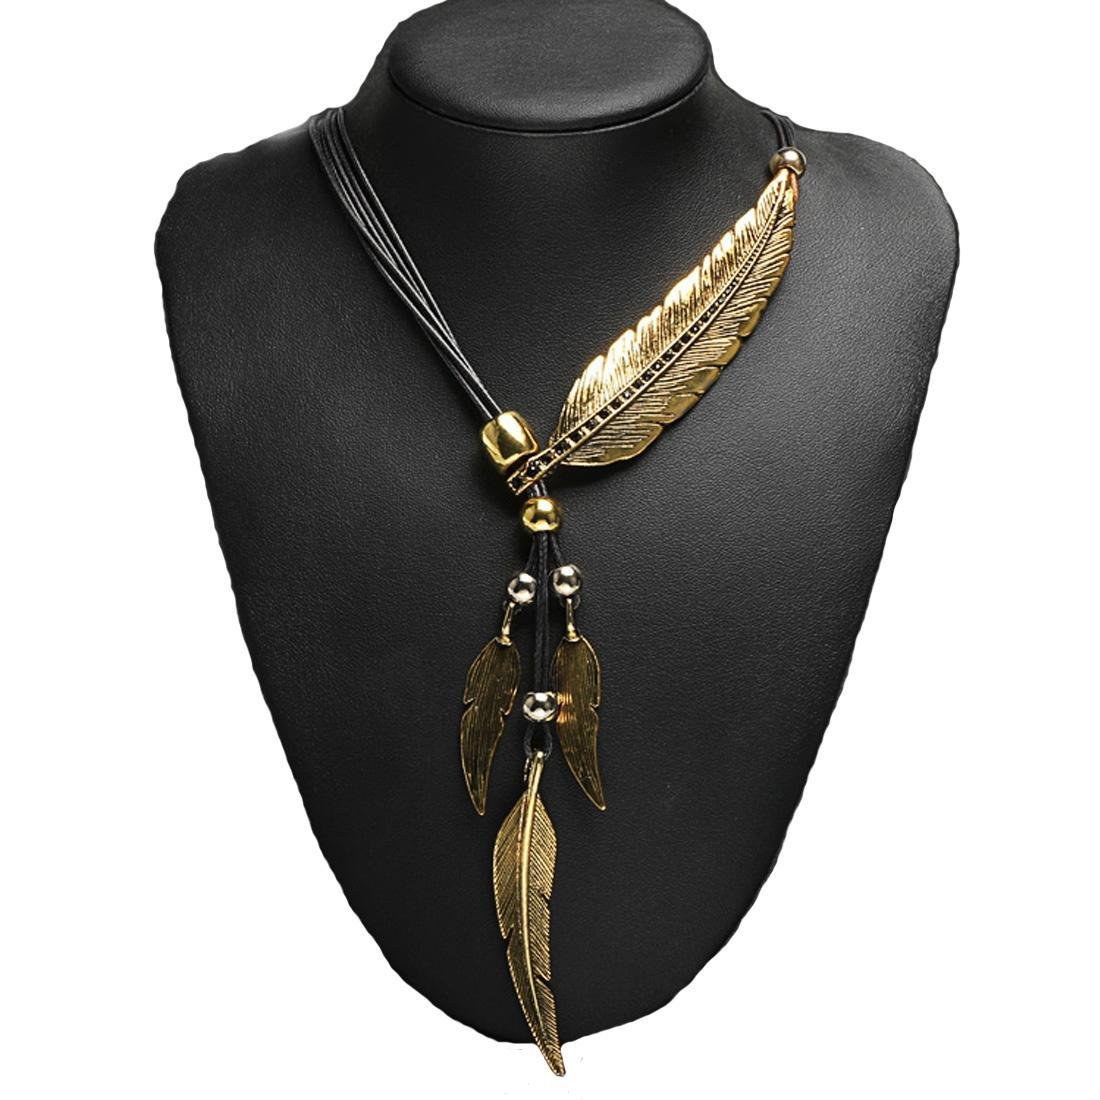 kecooi Fashion Beautiful Vintage Elegant Women Bohemian Style Bronze Rope Chain Feather Pattern Pendant Necklace Most Beautiful